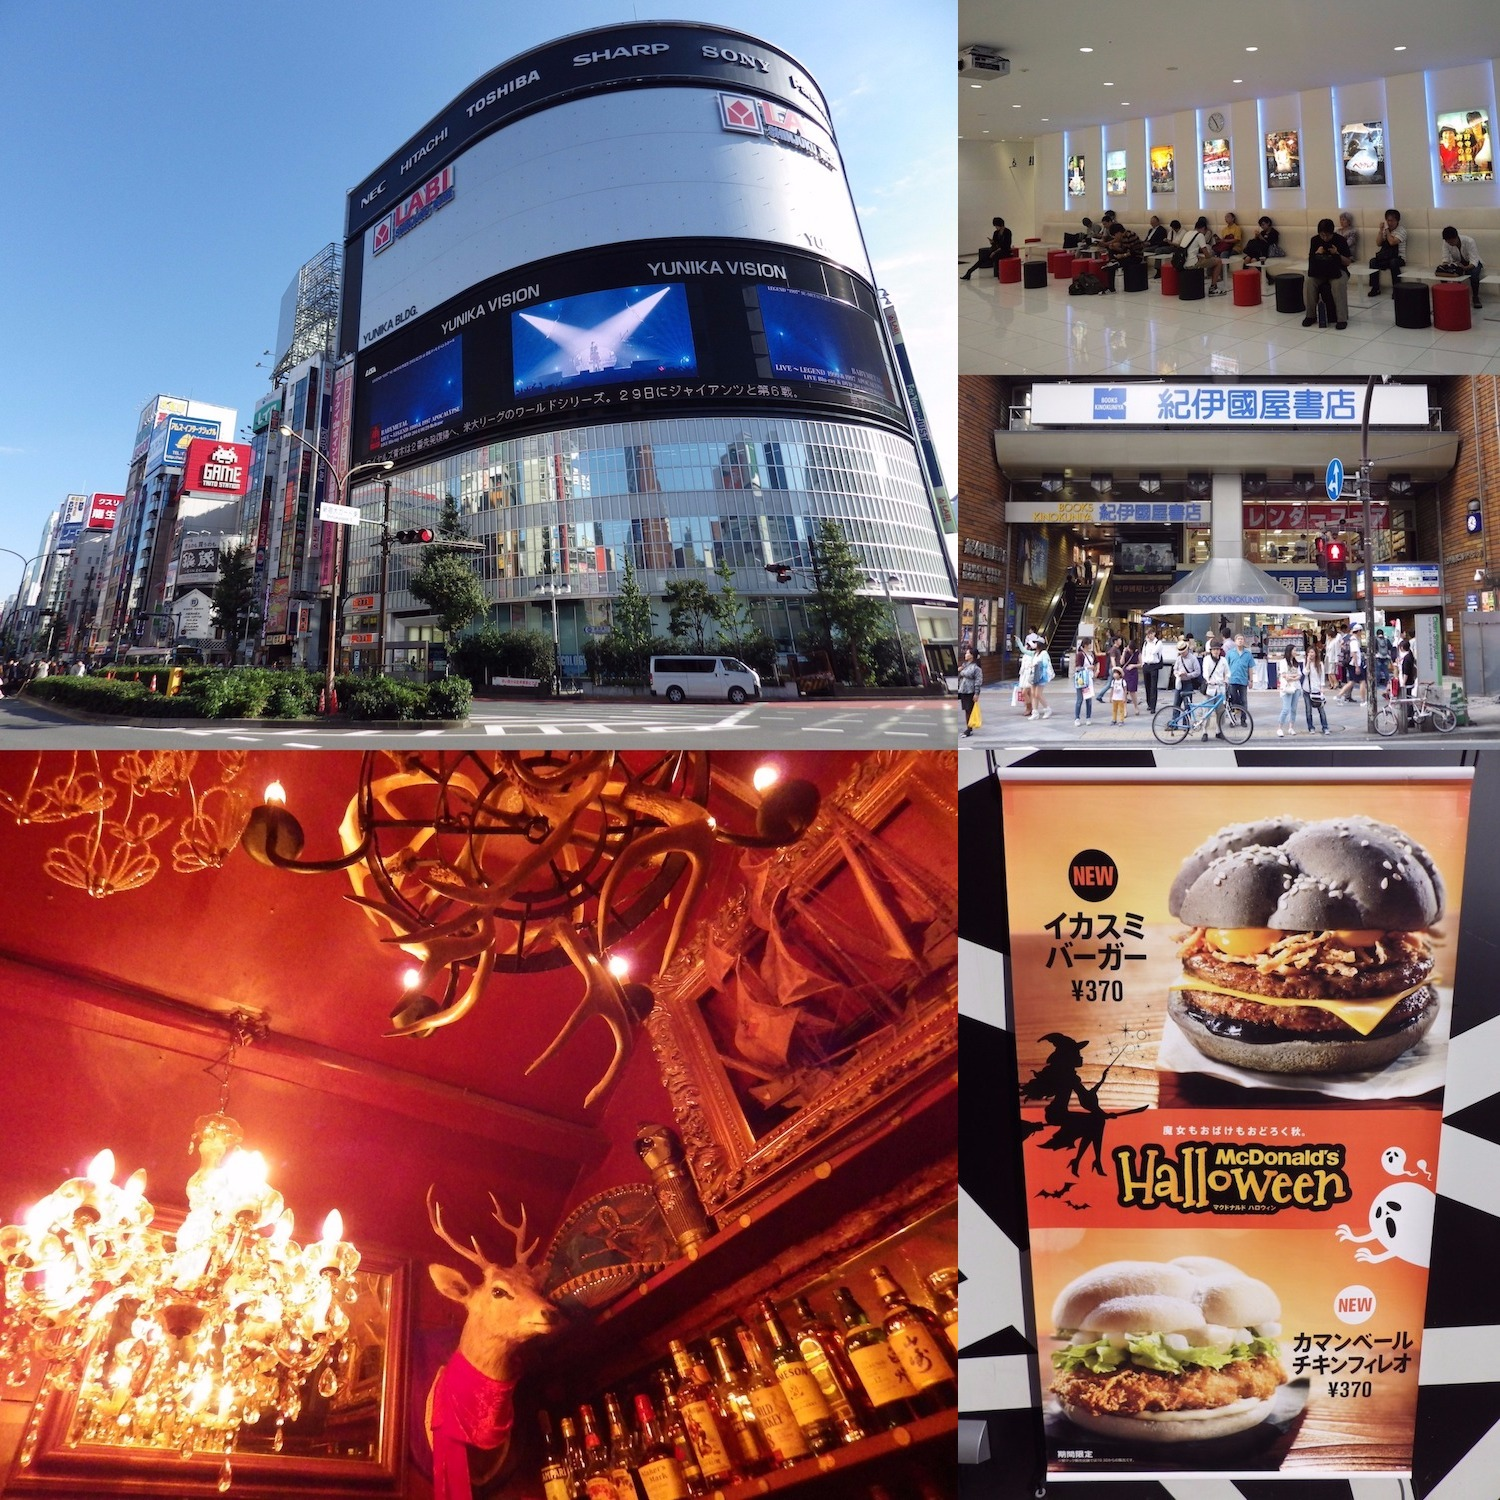 Clockwise, from top left: Yunika Vision's giant LED screens, lobby of the Shinjuku Piccadilly, flagship Main Store of Books Kinokuniya, poster for the black Halloween burger at McDonald's, and interior of Bar Albatross in Golden Gai.